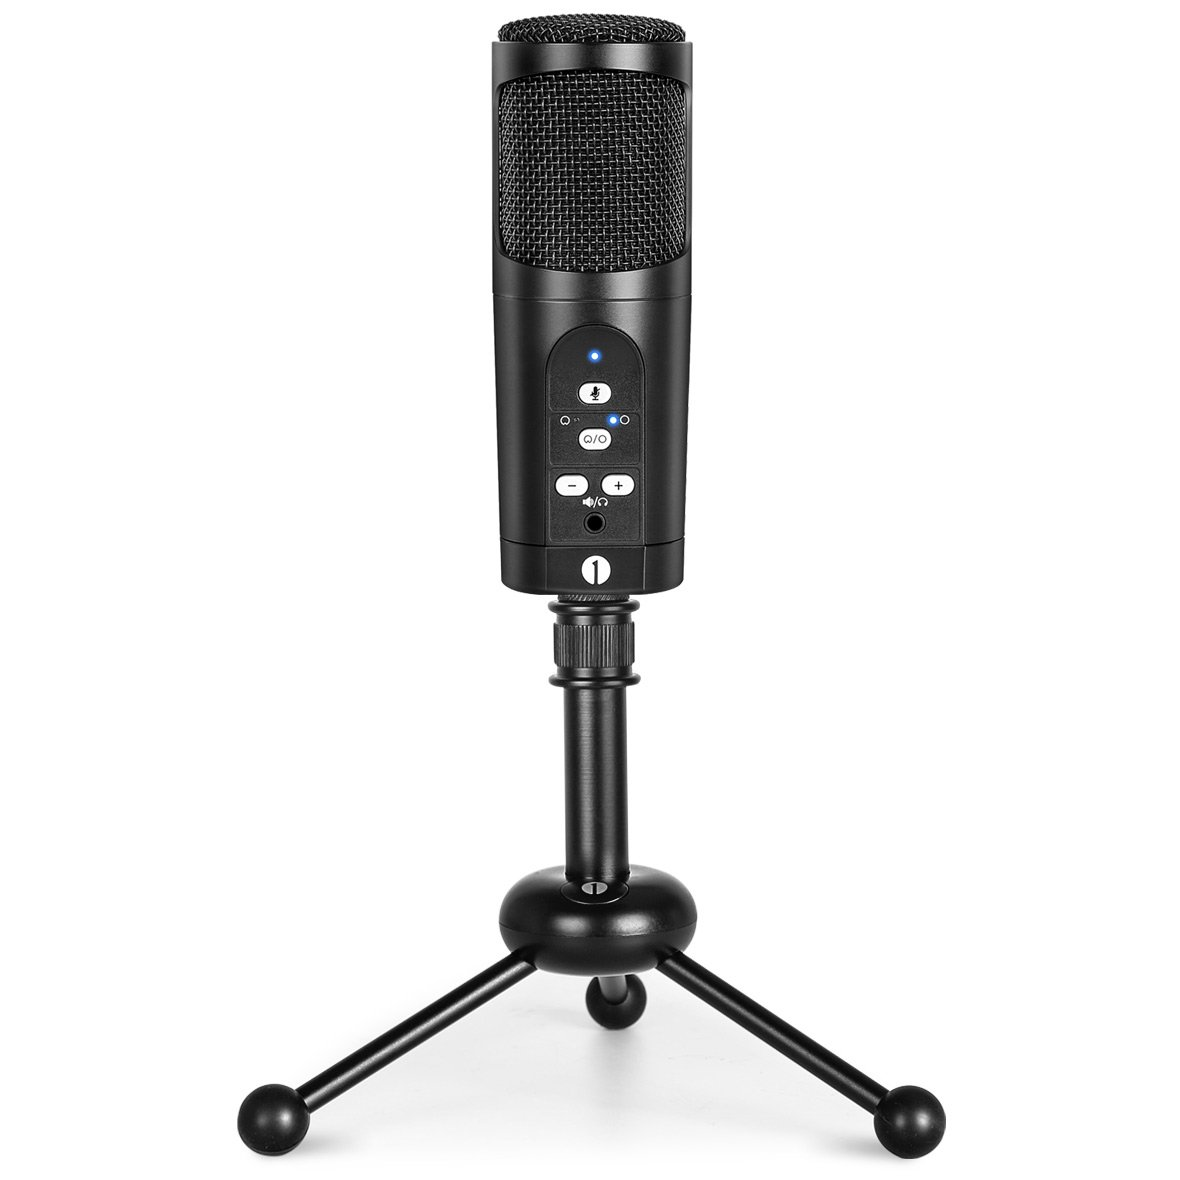 1byone USB Microphone with tripod, Mute Button, LED indicator, audio out volume up/down control, compatible with Windows/MacOS/Linux, Cardioid or Omni-directional Condenser USB Microphone 4330236099